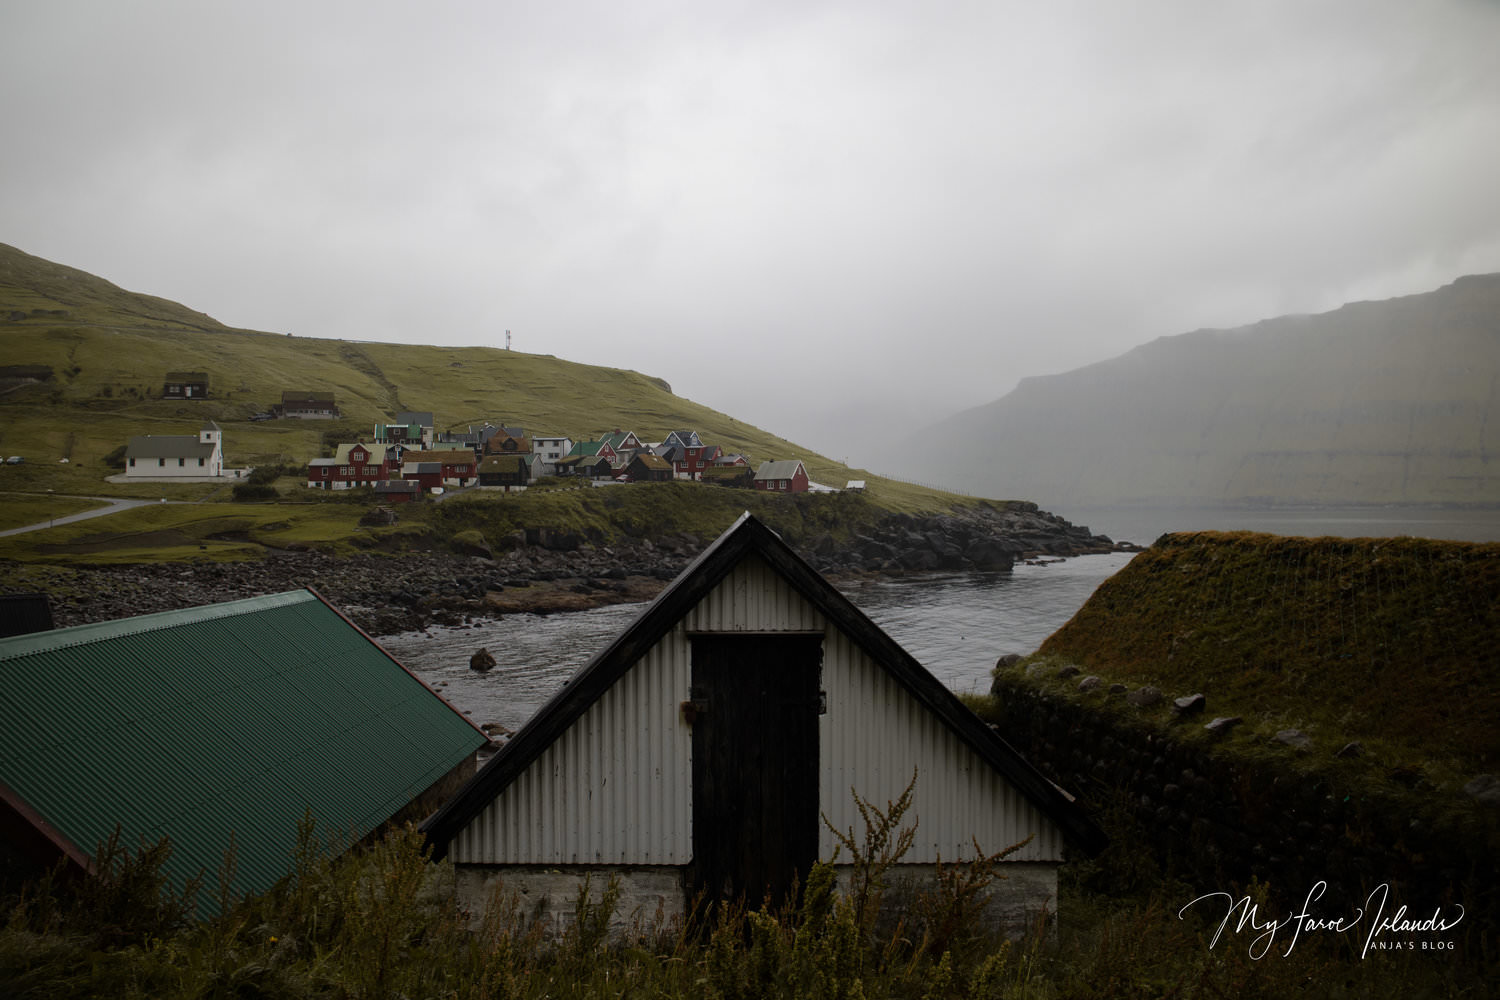 The+Haunting+of+Boat+House+©+My+Faroe+Islands,+Anja+Mazuhn.jpg